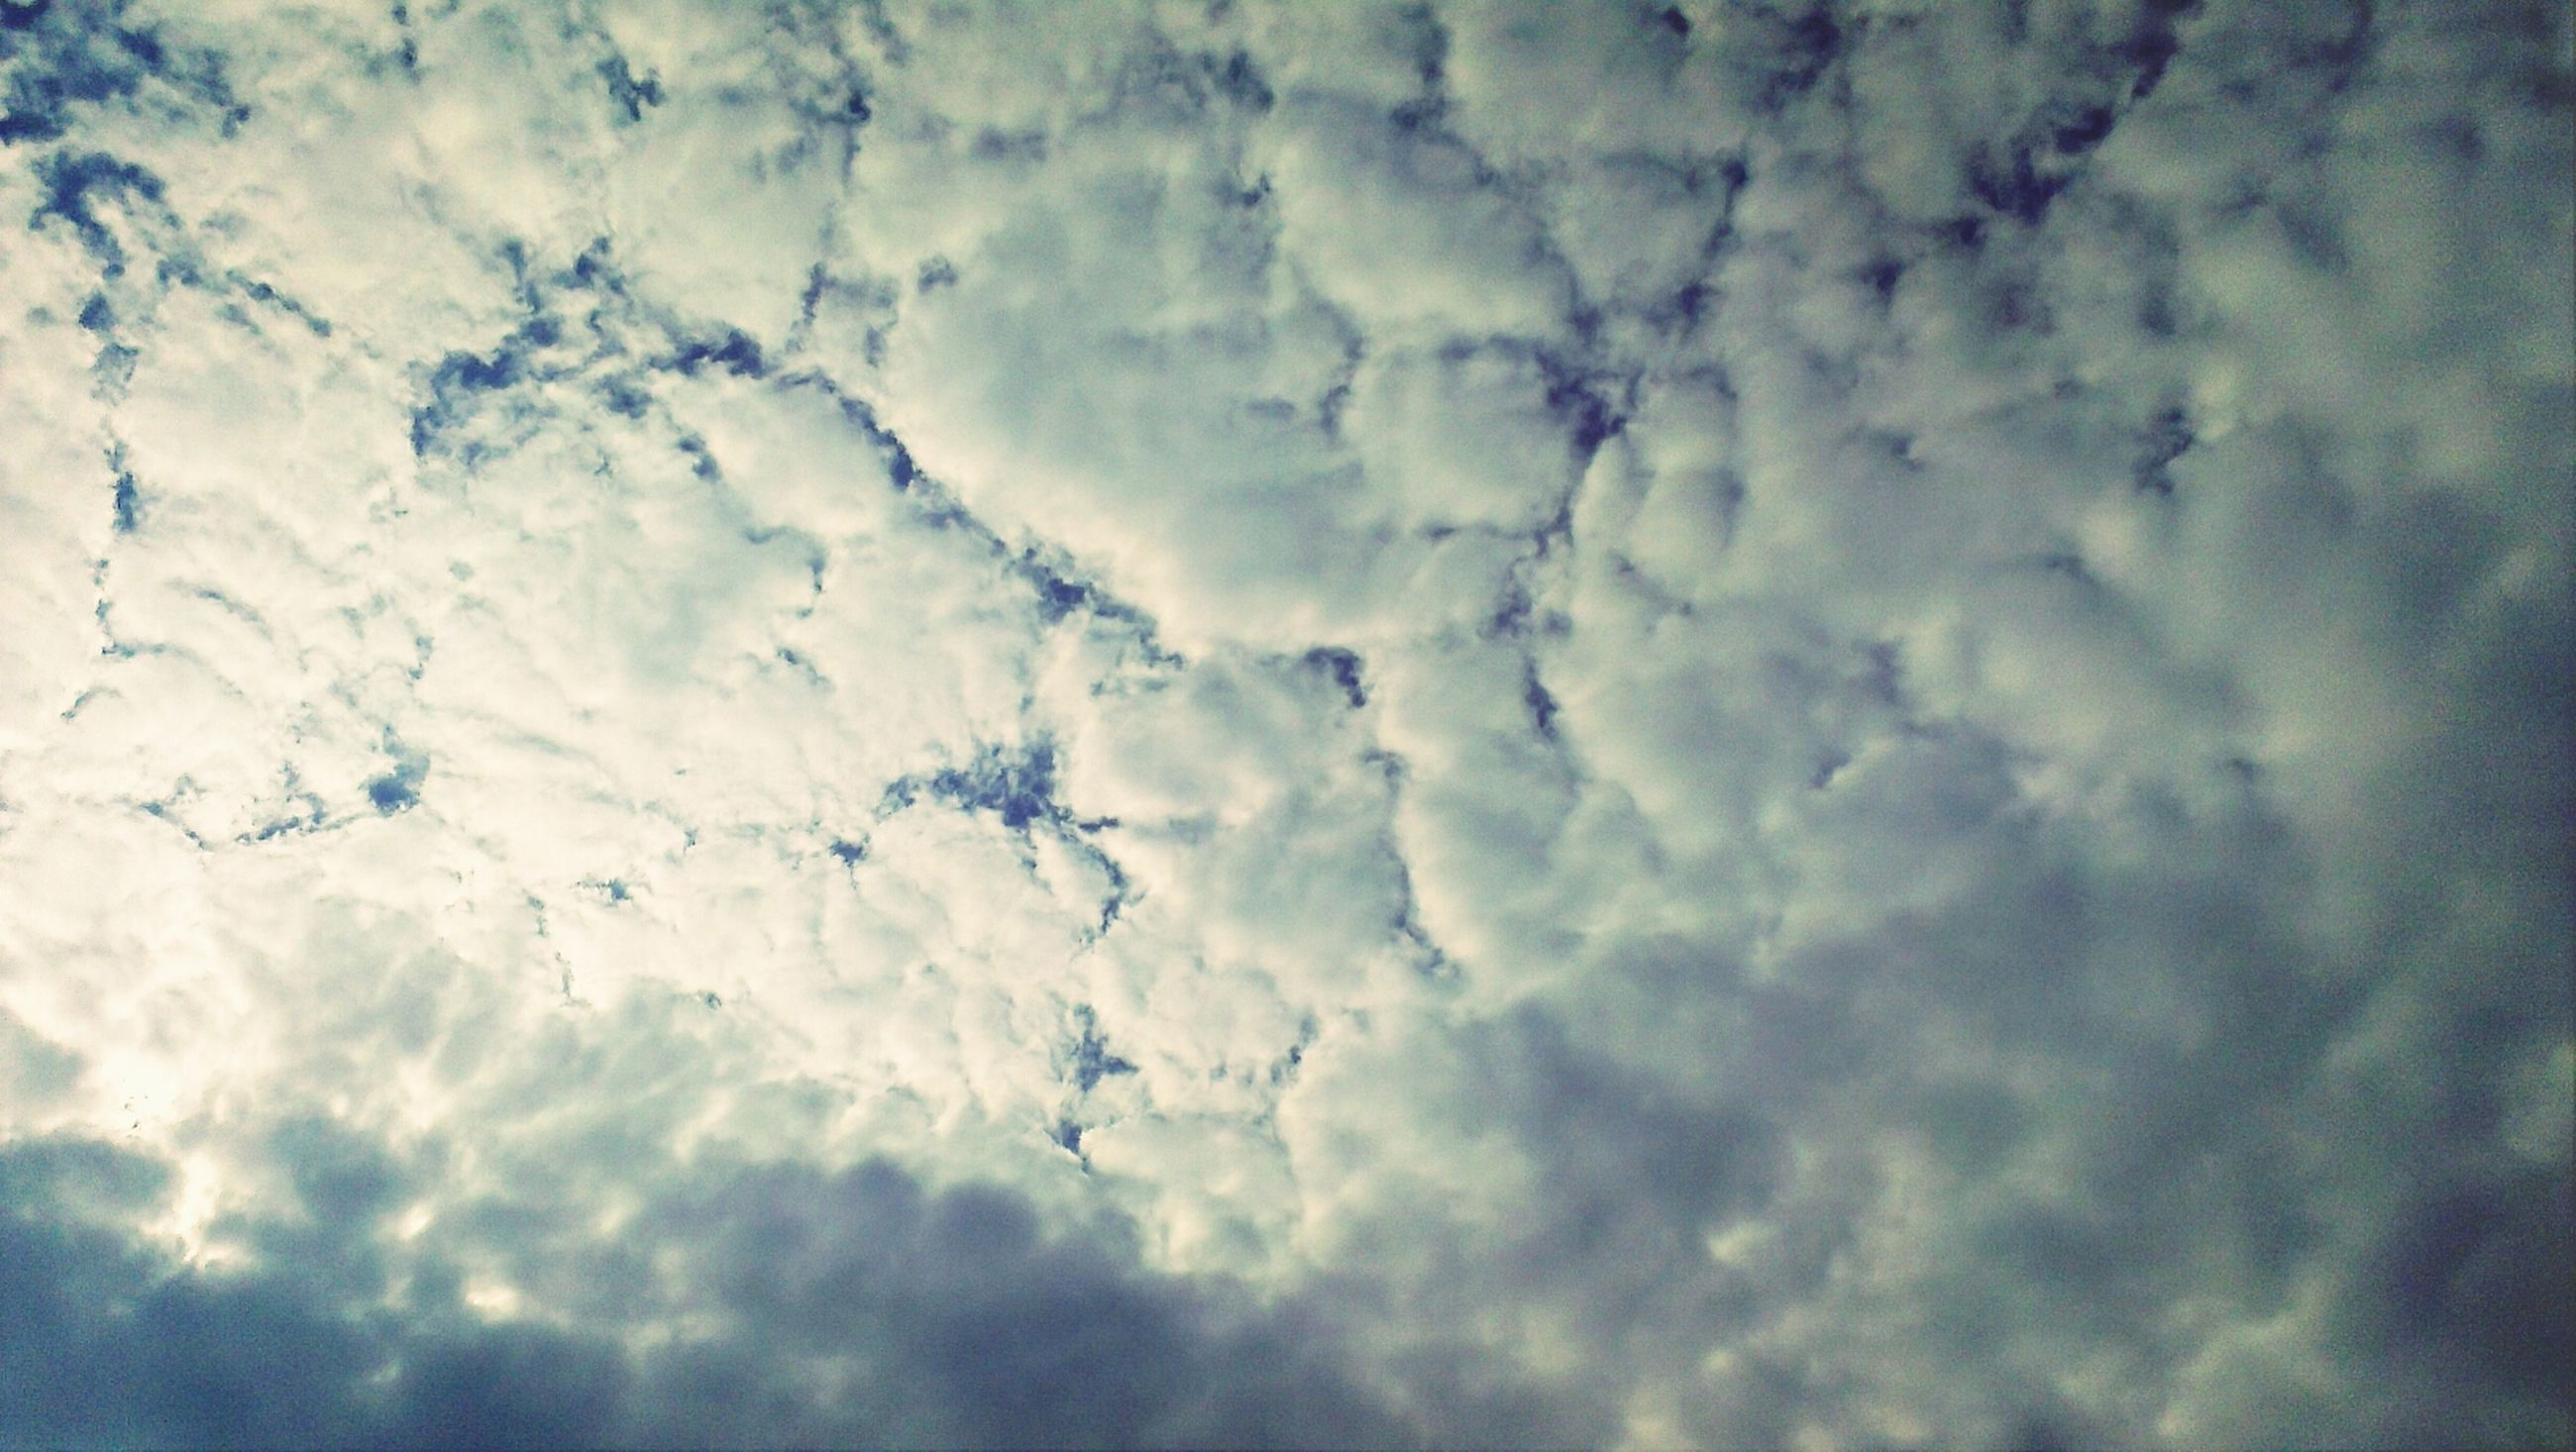 cloud - sky, sky, weather, cloudy, full frame, backgrounds, low angle view, nature, beauty in nature, tranquility, scenics, cloudscape, cloud, tranquil scene, overcast, sky only, day, season, no people, outdoors